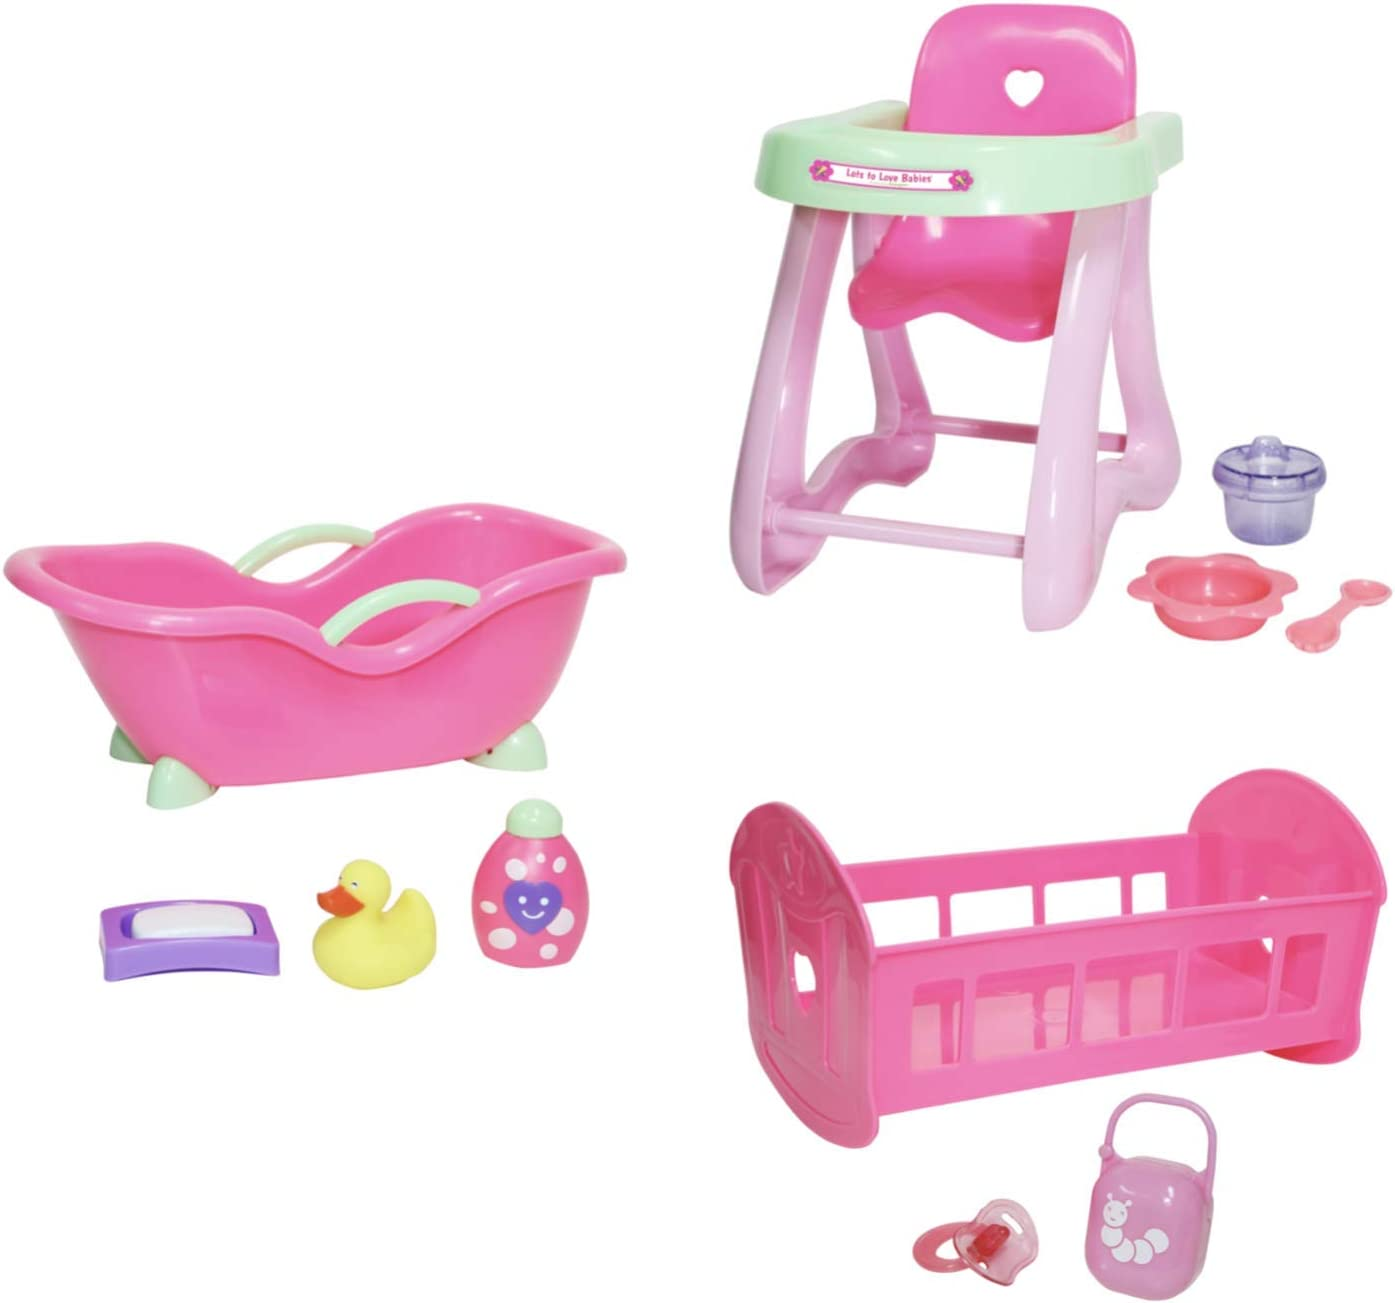 "JC Toys Deluxe Doll Accessory Bundle Featuring High Chair, Crib, Bath and Accessories for Dolls up to 11""."